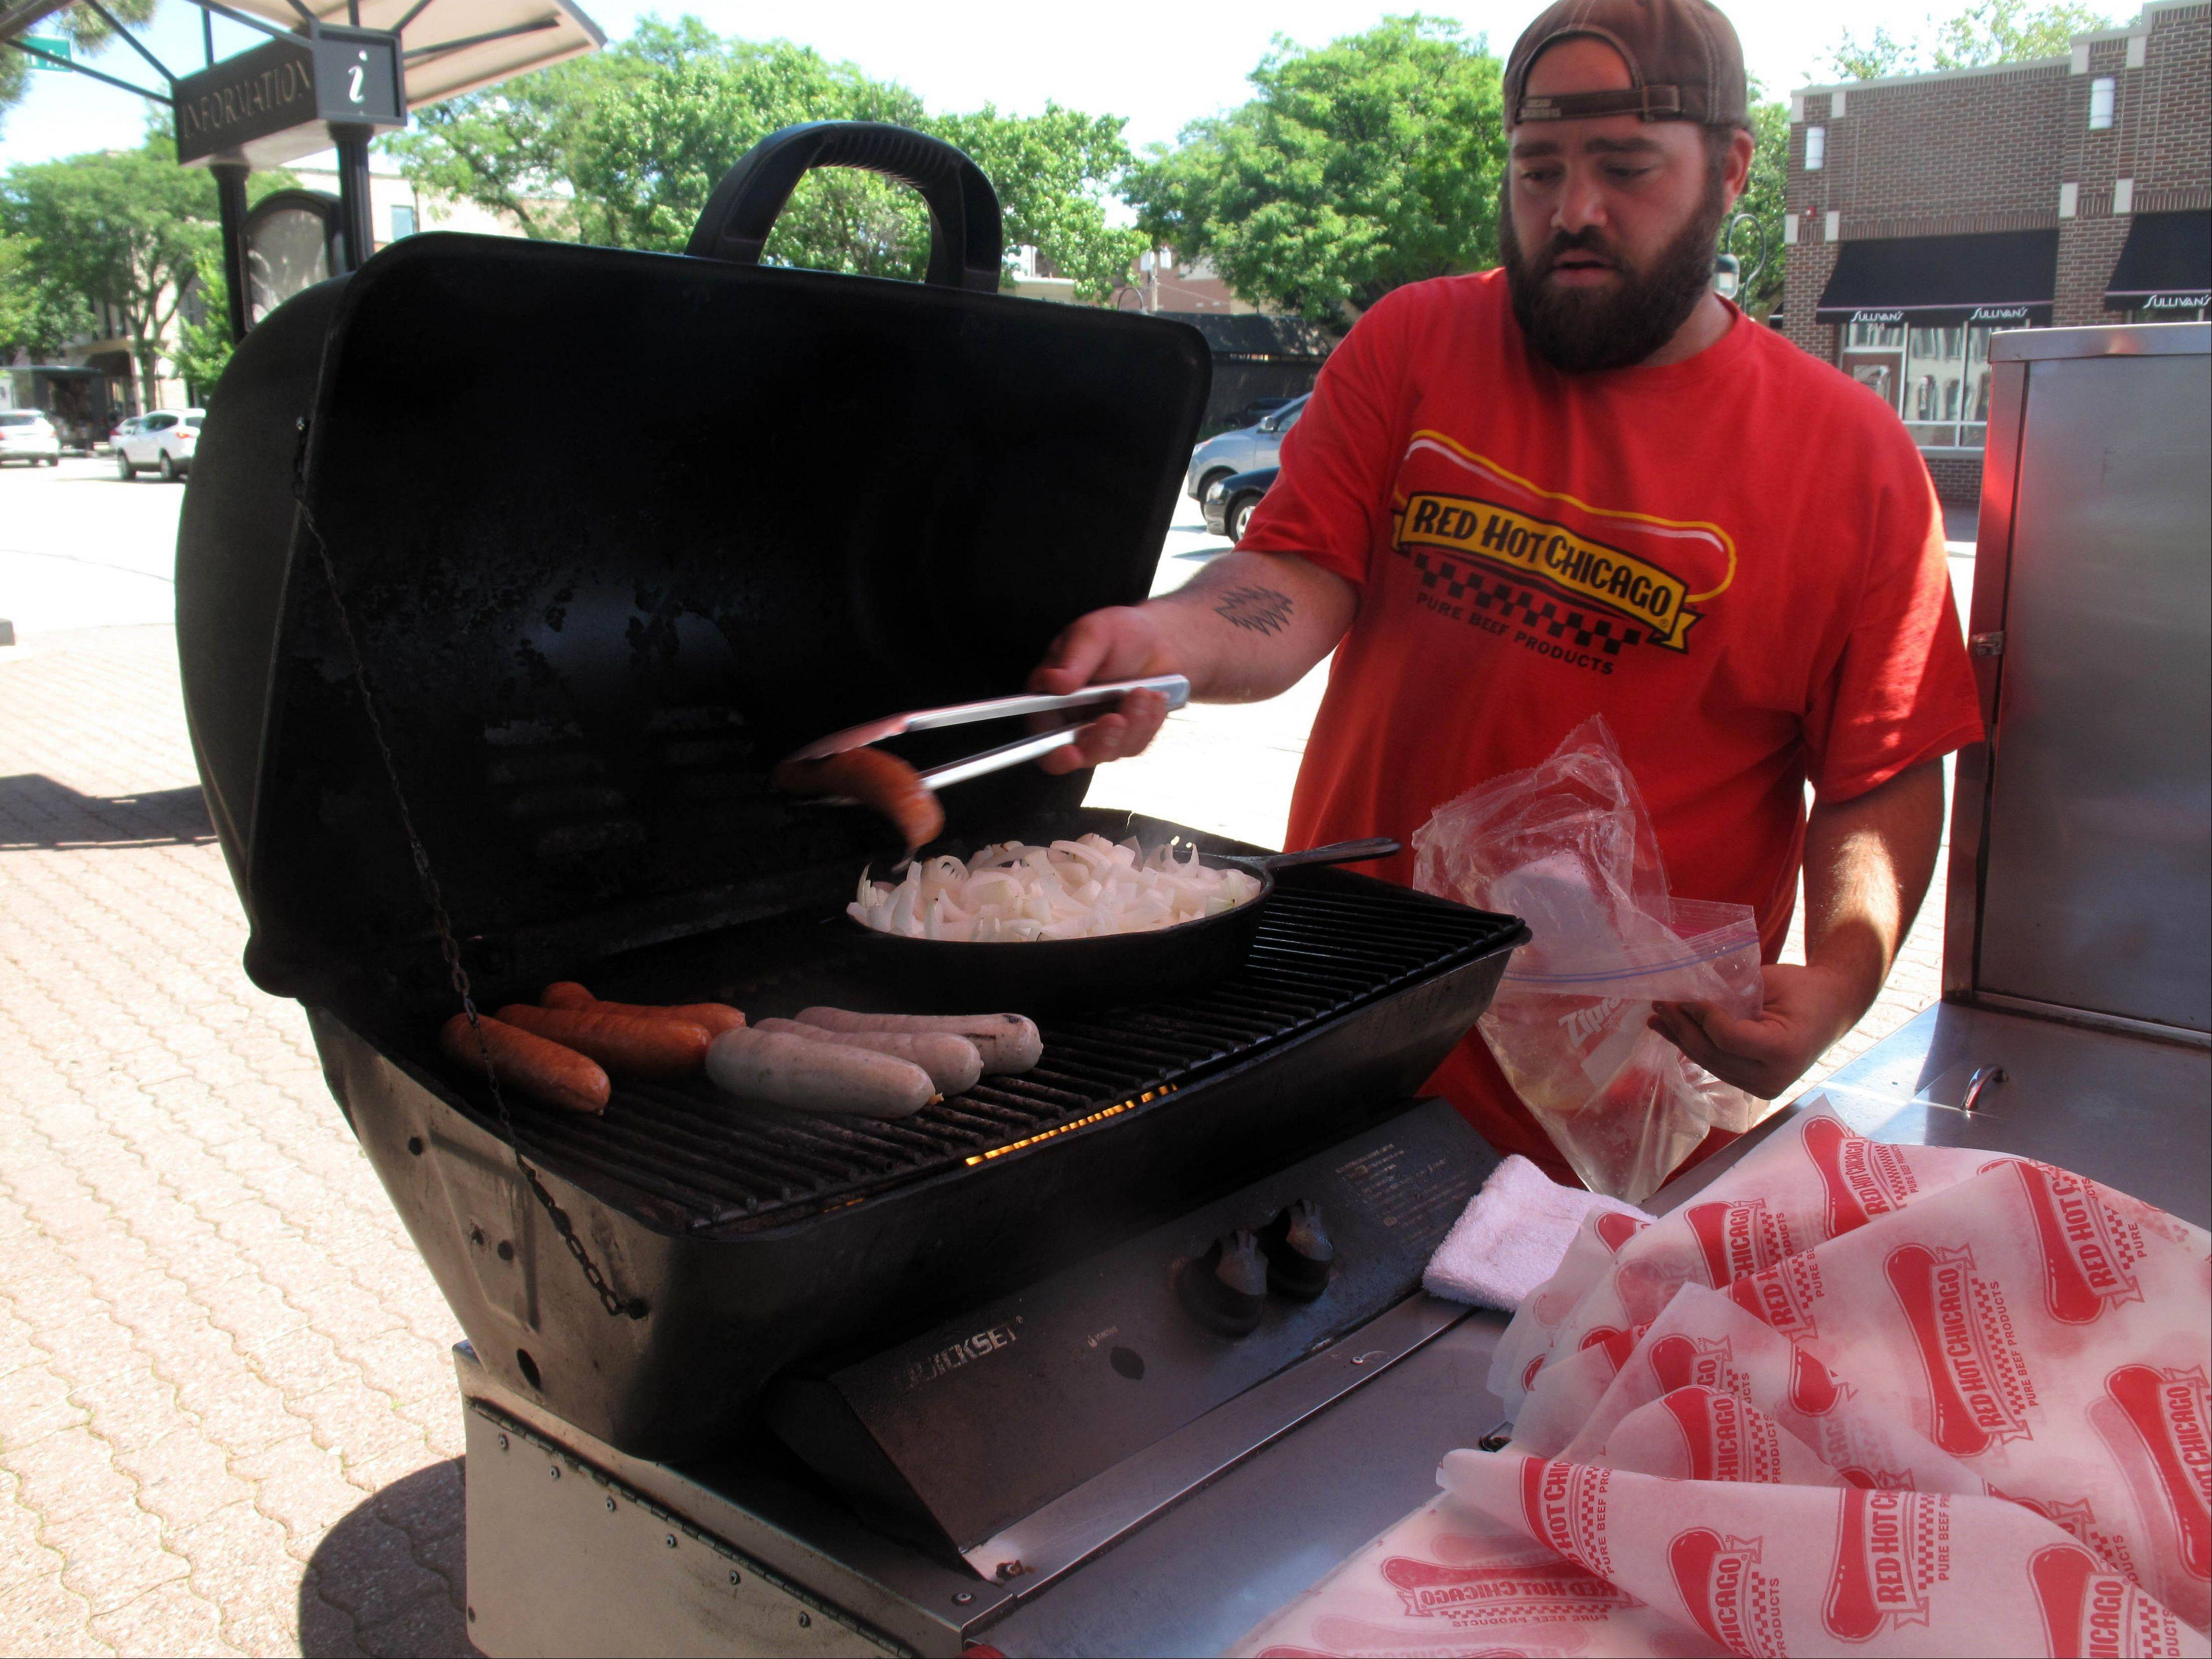 Joe Hornbaker of Joey's Red Hots starts grilling hot dogs, brats and onions from his food cart on Main Street just south of Jackson Avenue near the Riverwalk's horse trough fountain in Naperville. The city soon will survey the public to gather thoughts on food carts in the downtown.